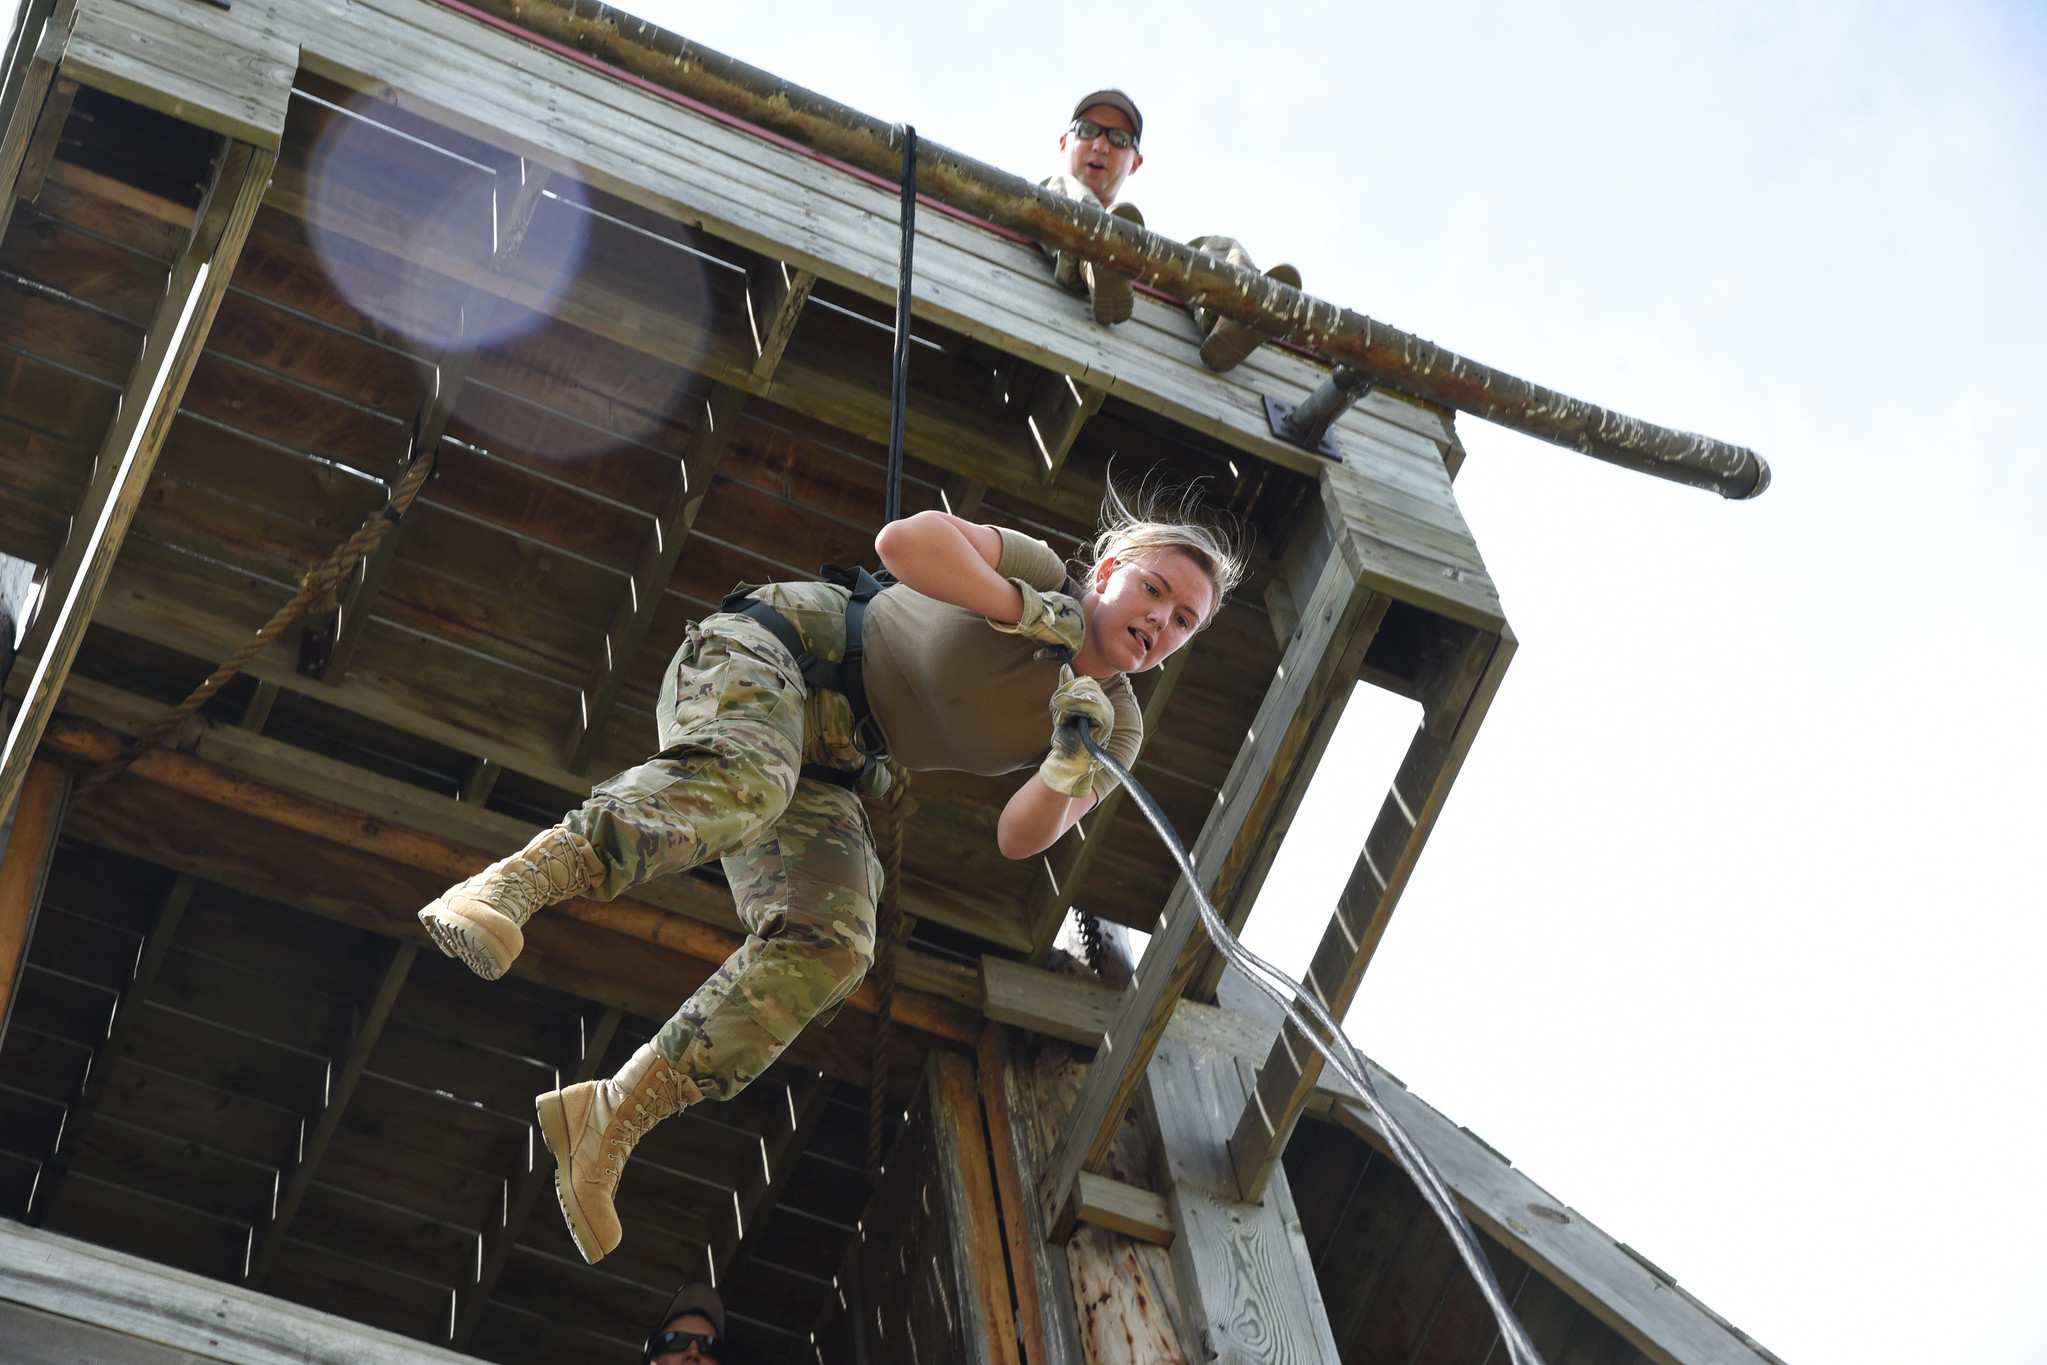 Airman 1st Class Maggie Hebert lowers herself on a rope using an